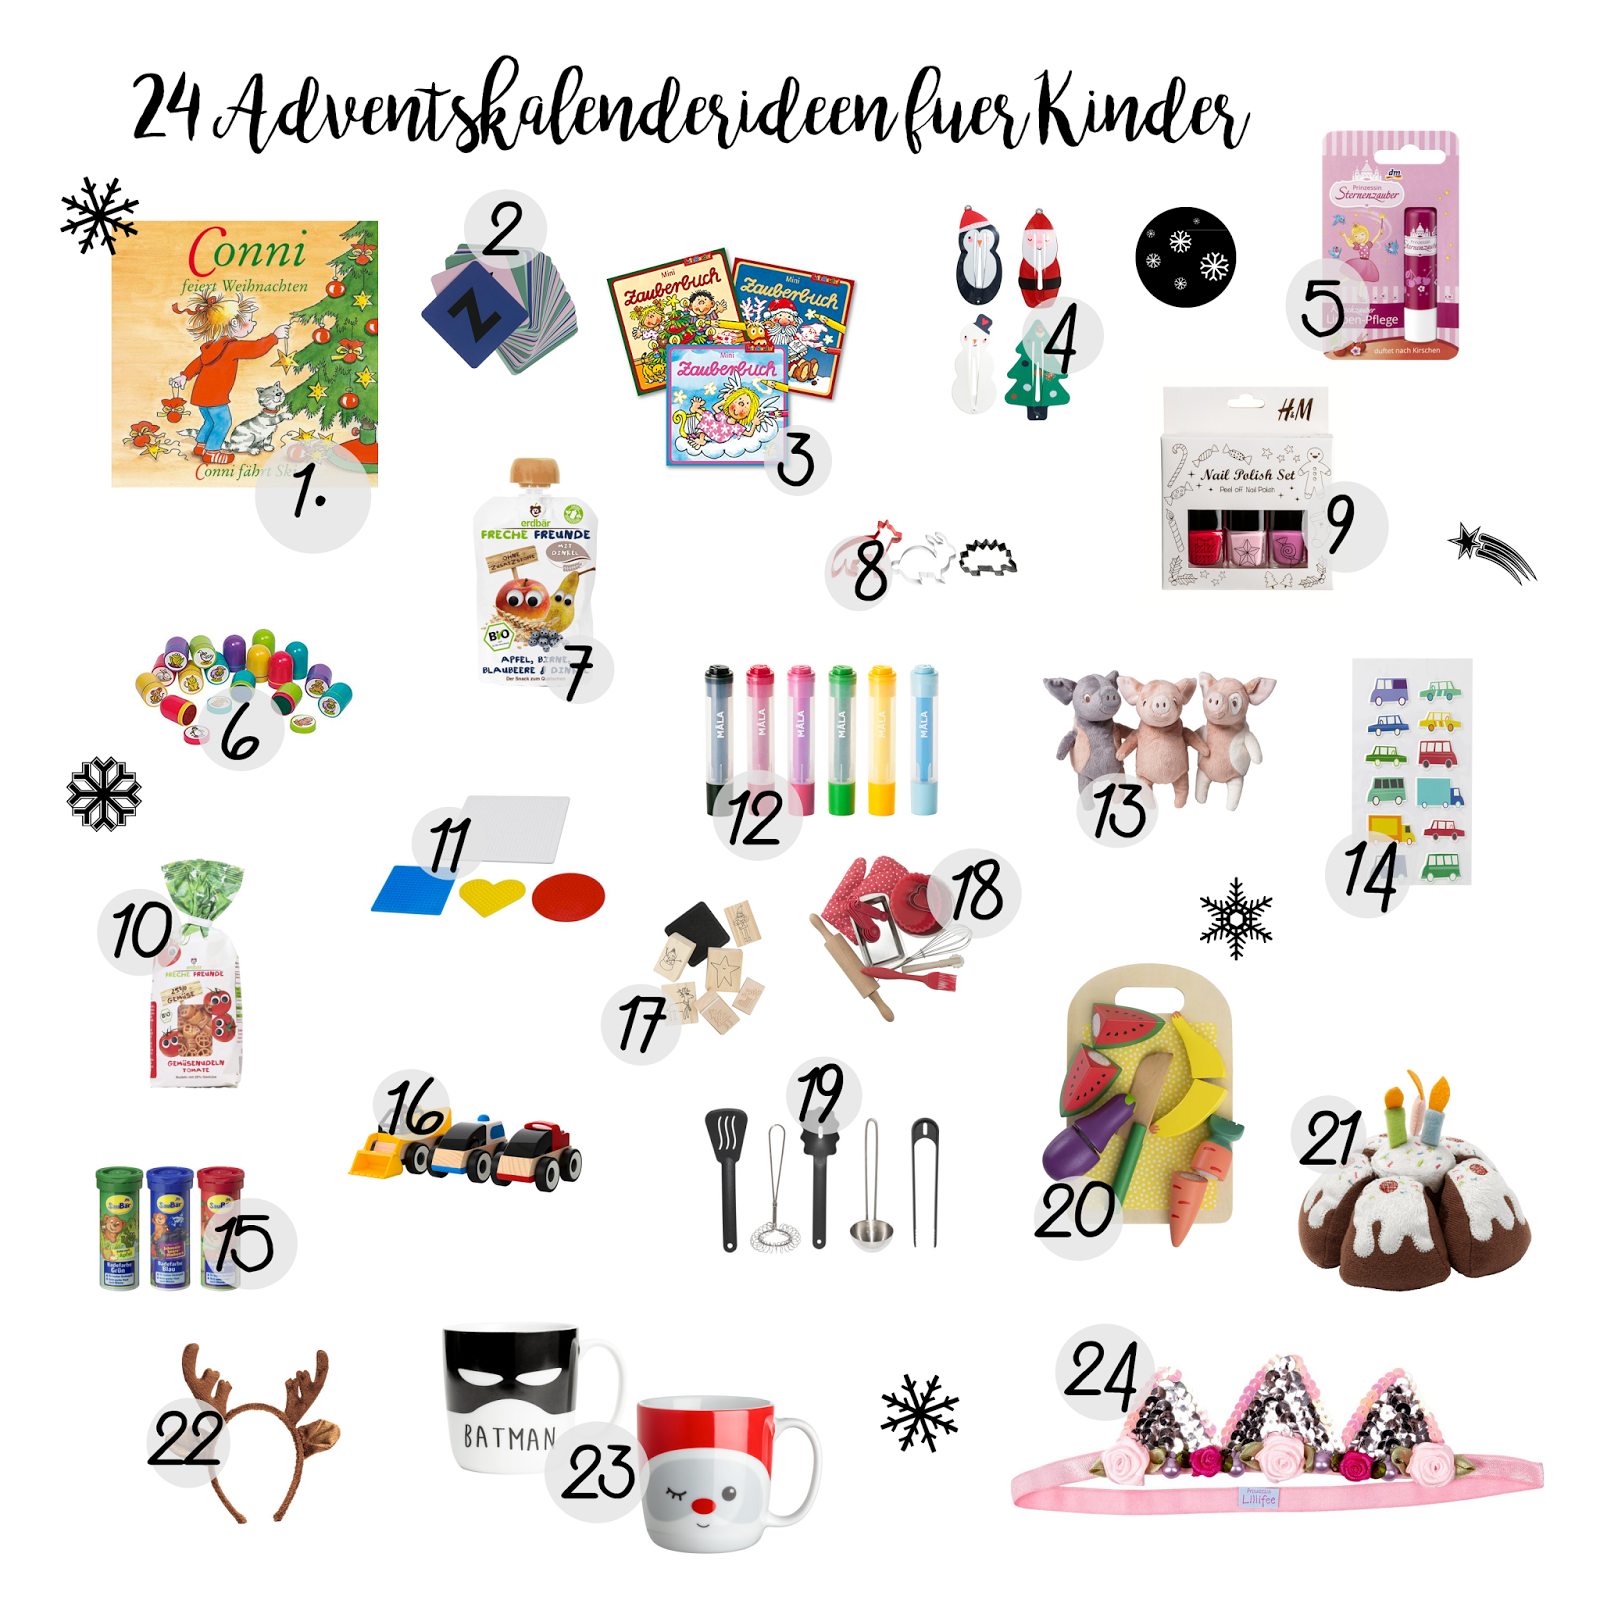 momlife 24 adventskalenderideen f r kinder. Black Bedroom Furniture Sets. Home Design Ideas